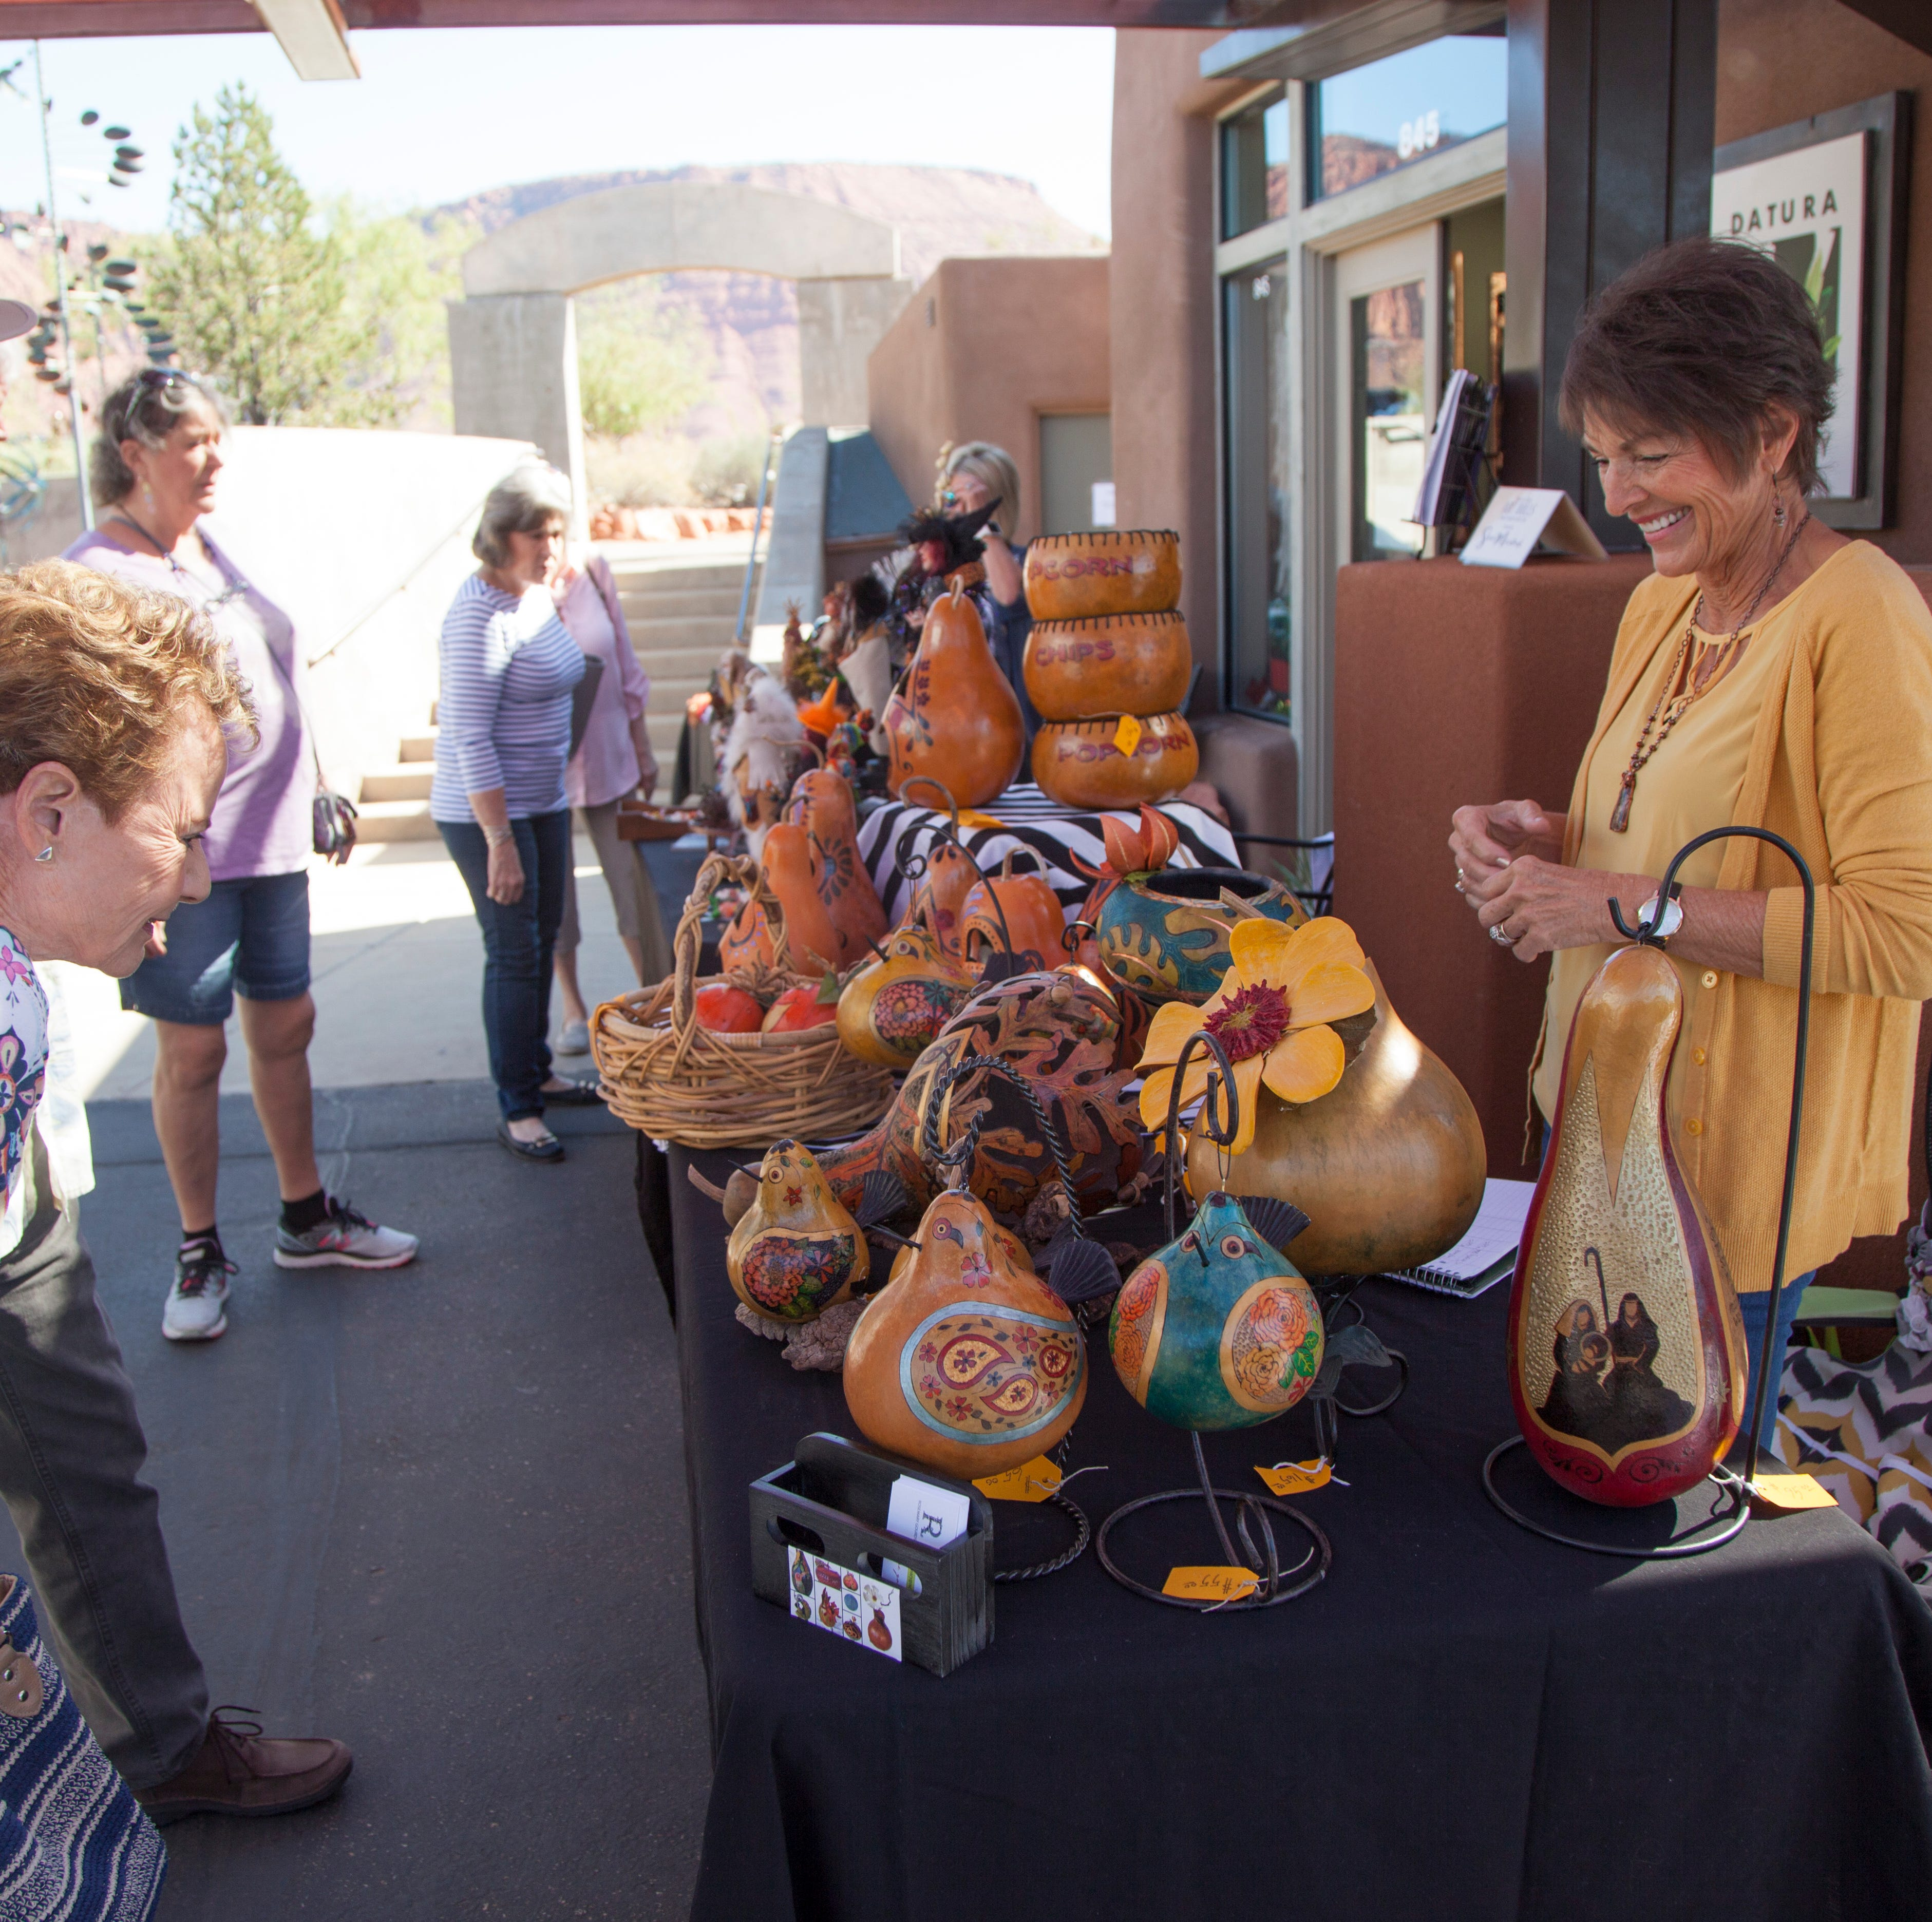 Art in Kayenta festival is a feast for the senses